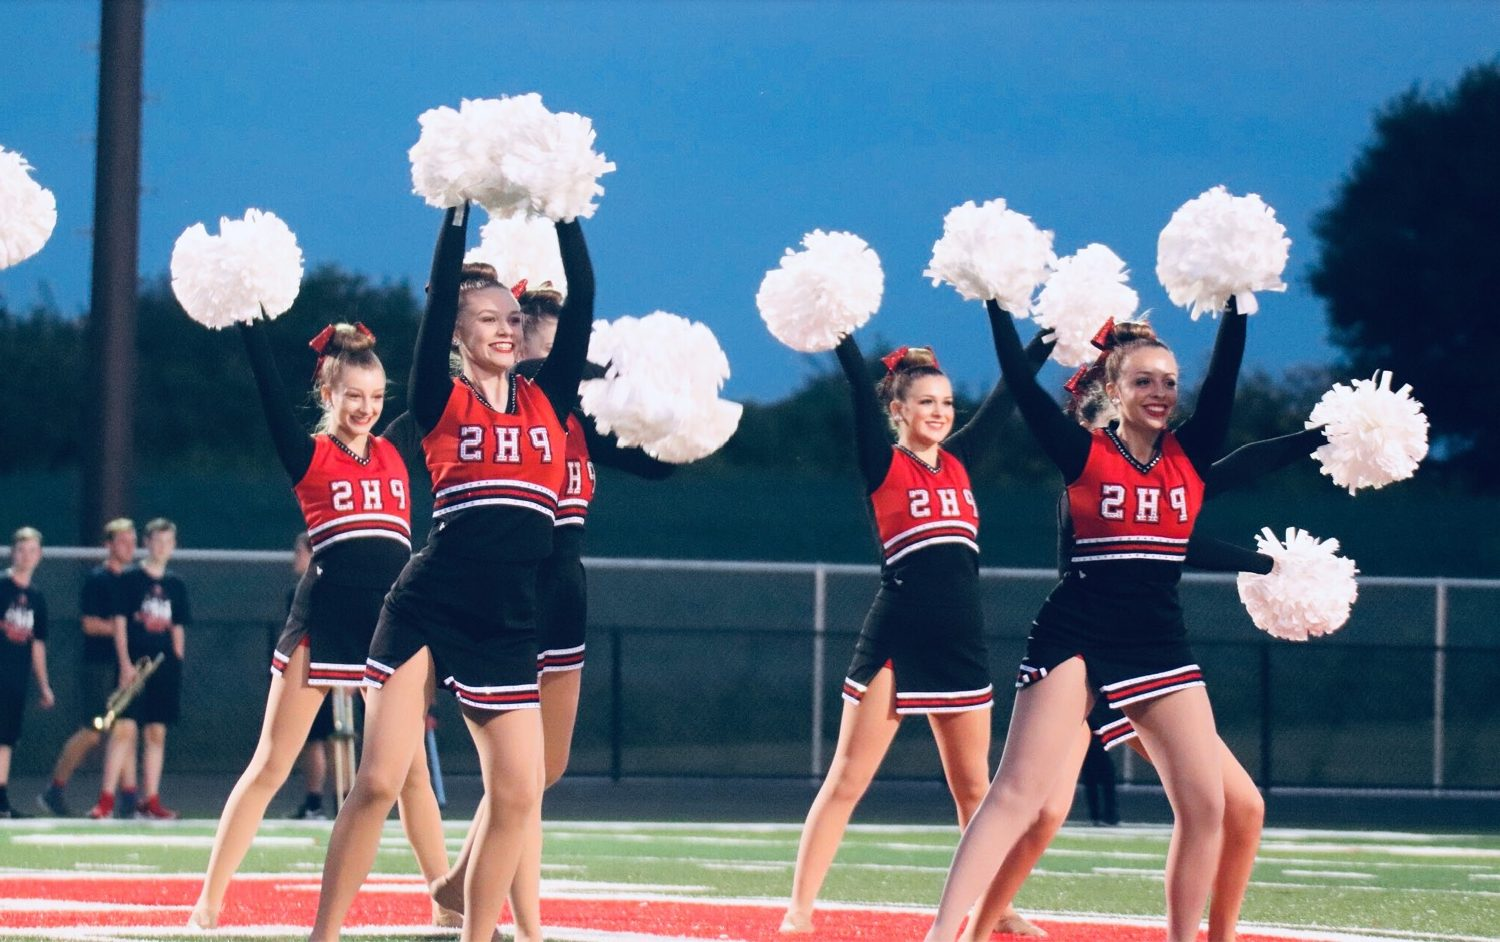 Striking a pose with their heads and  pom-poms held high, Emma Pitman (11), Lauren Jones (12), Torey Swanson (11), and Brooke Williams (9) perform at a football game.